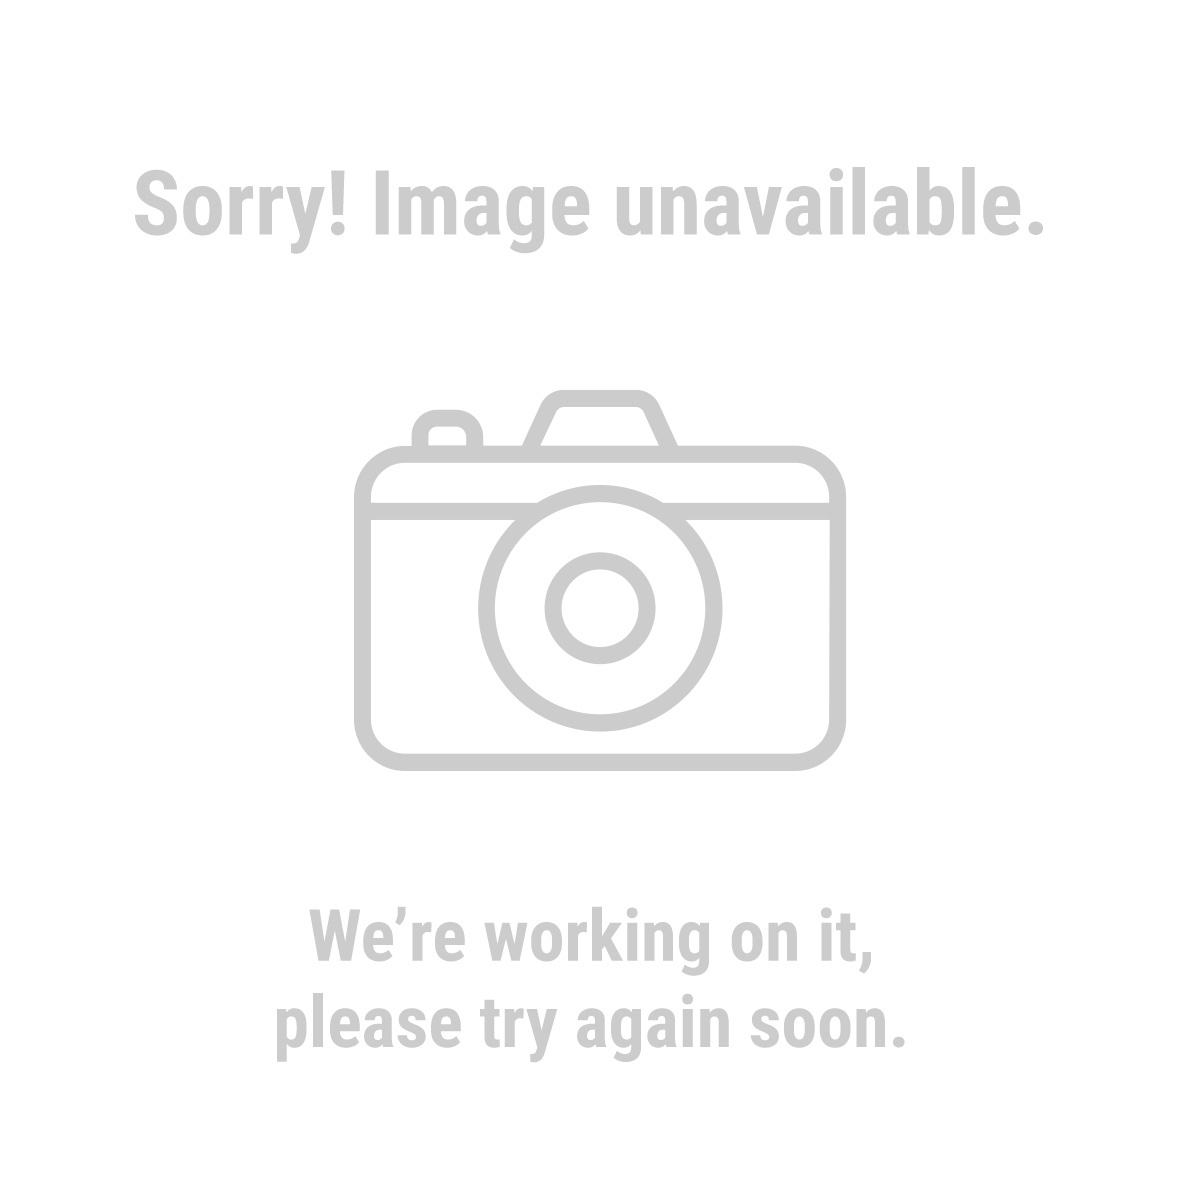 Pacific Hydrostar 69305 3/4 Horsepower Shallow Well Pump with Cast Iron Housing